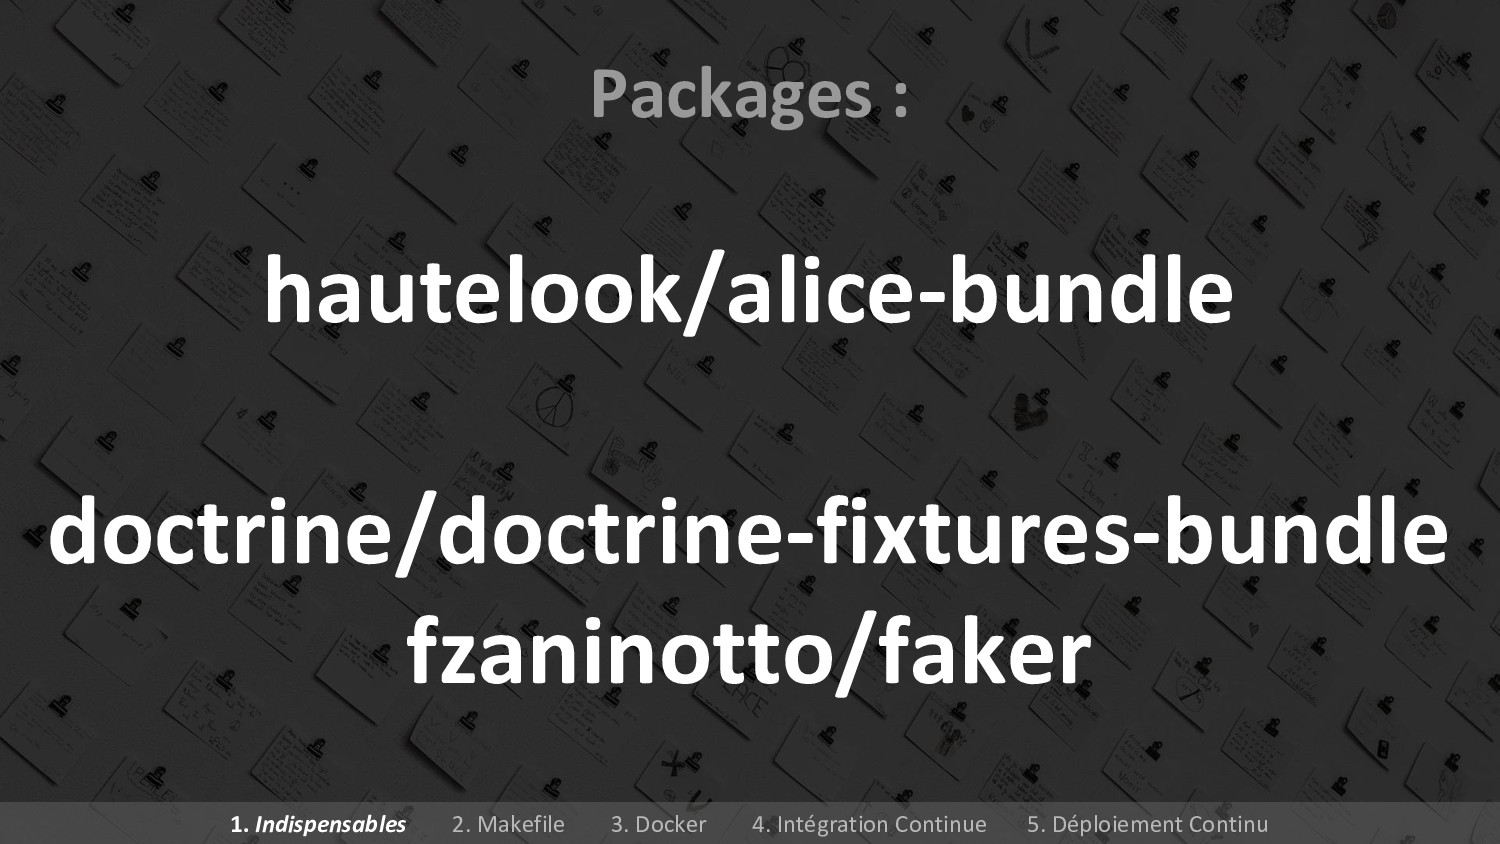 hautelook/alice-bundle doctrine/doctrine-fixtur...